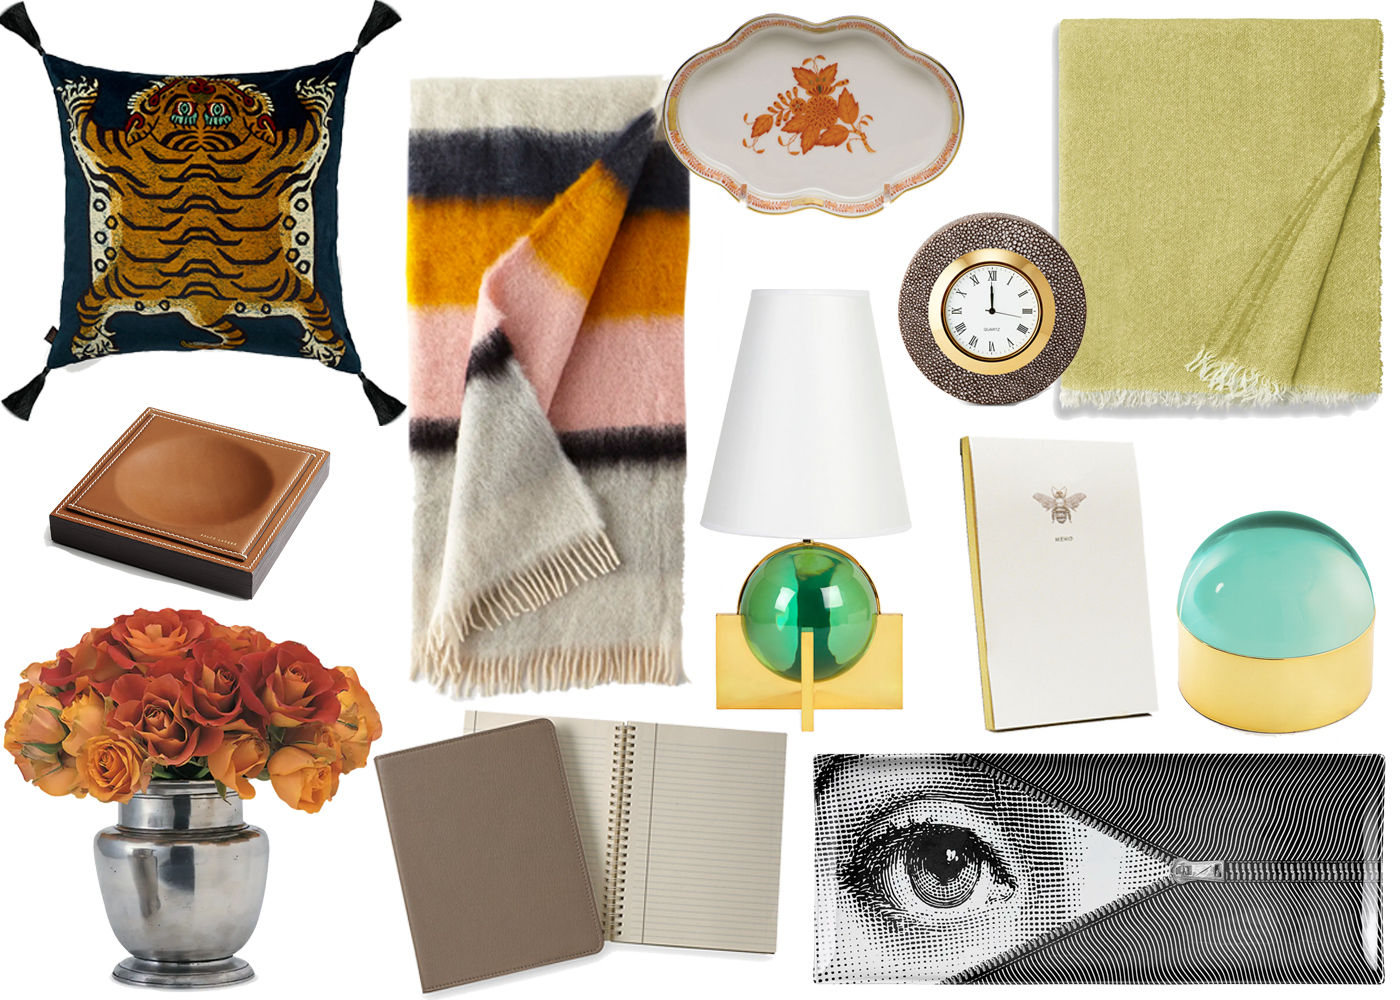 THE WFH GIFT GUIDE